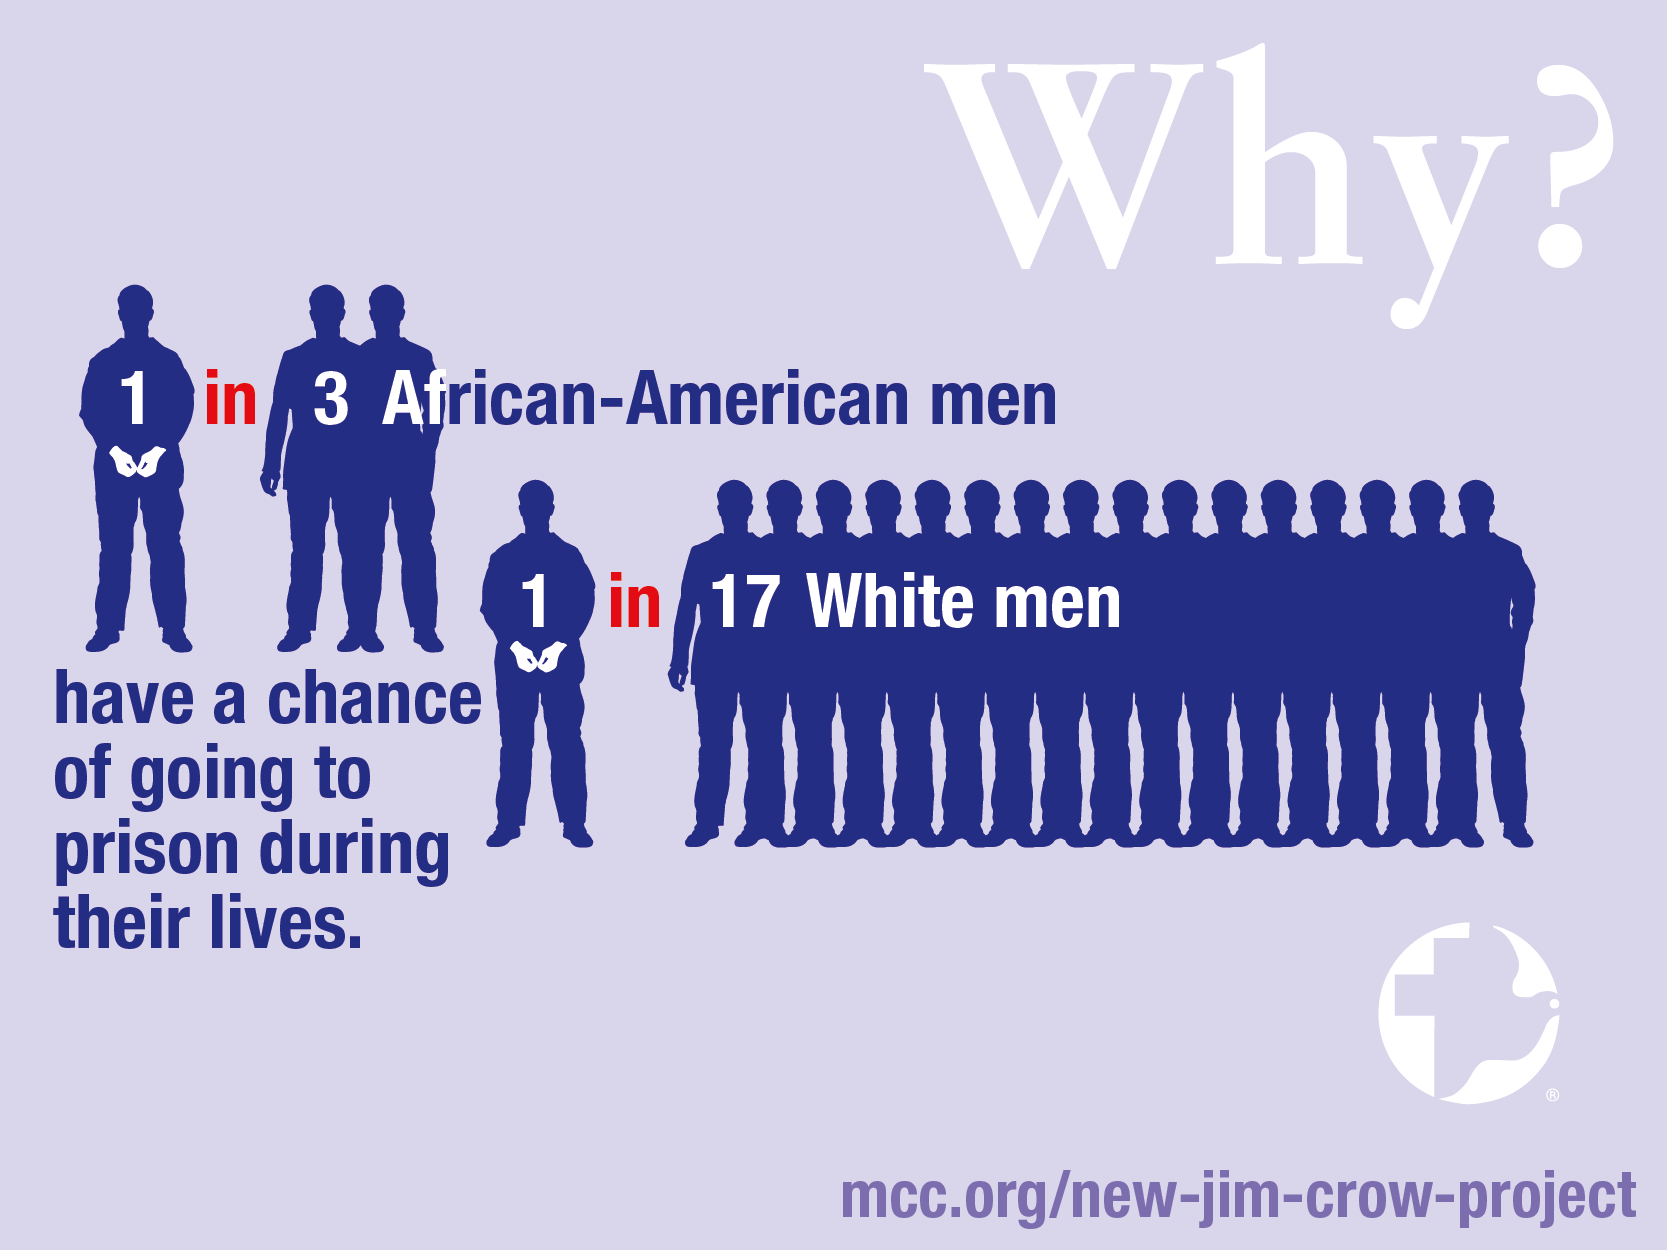 race and mass incarceration | mennonite central committee u.s.